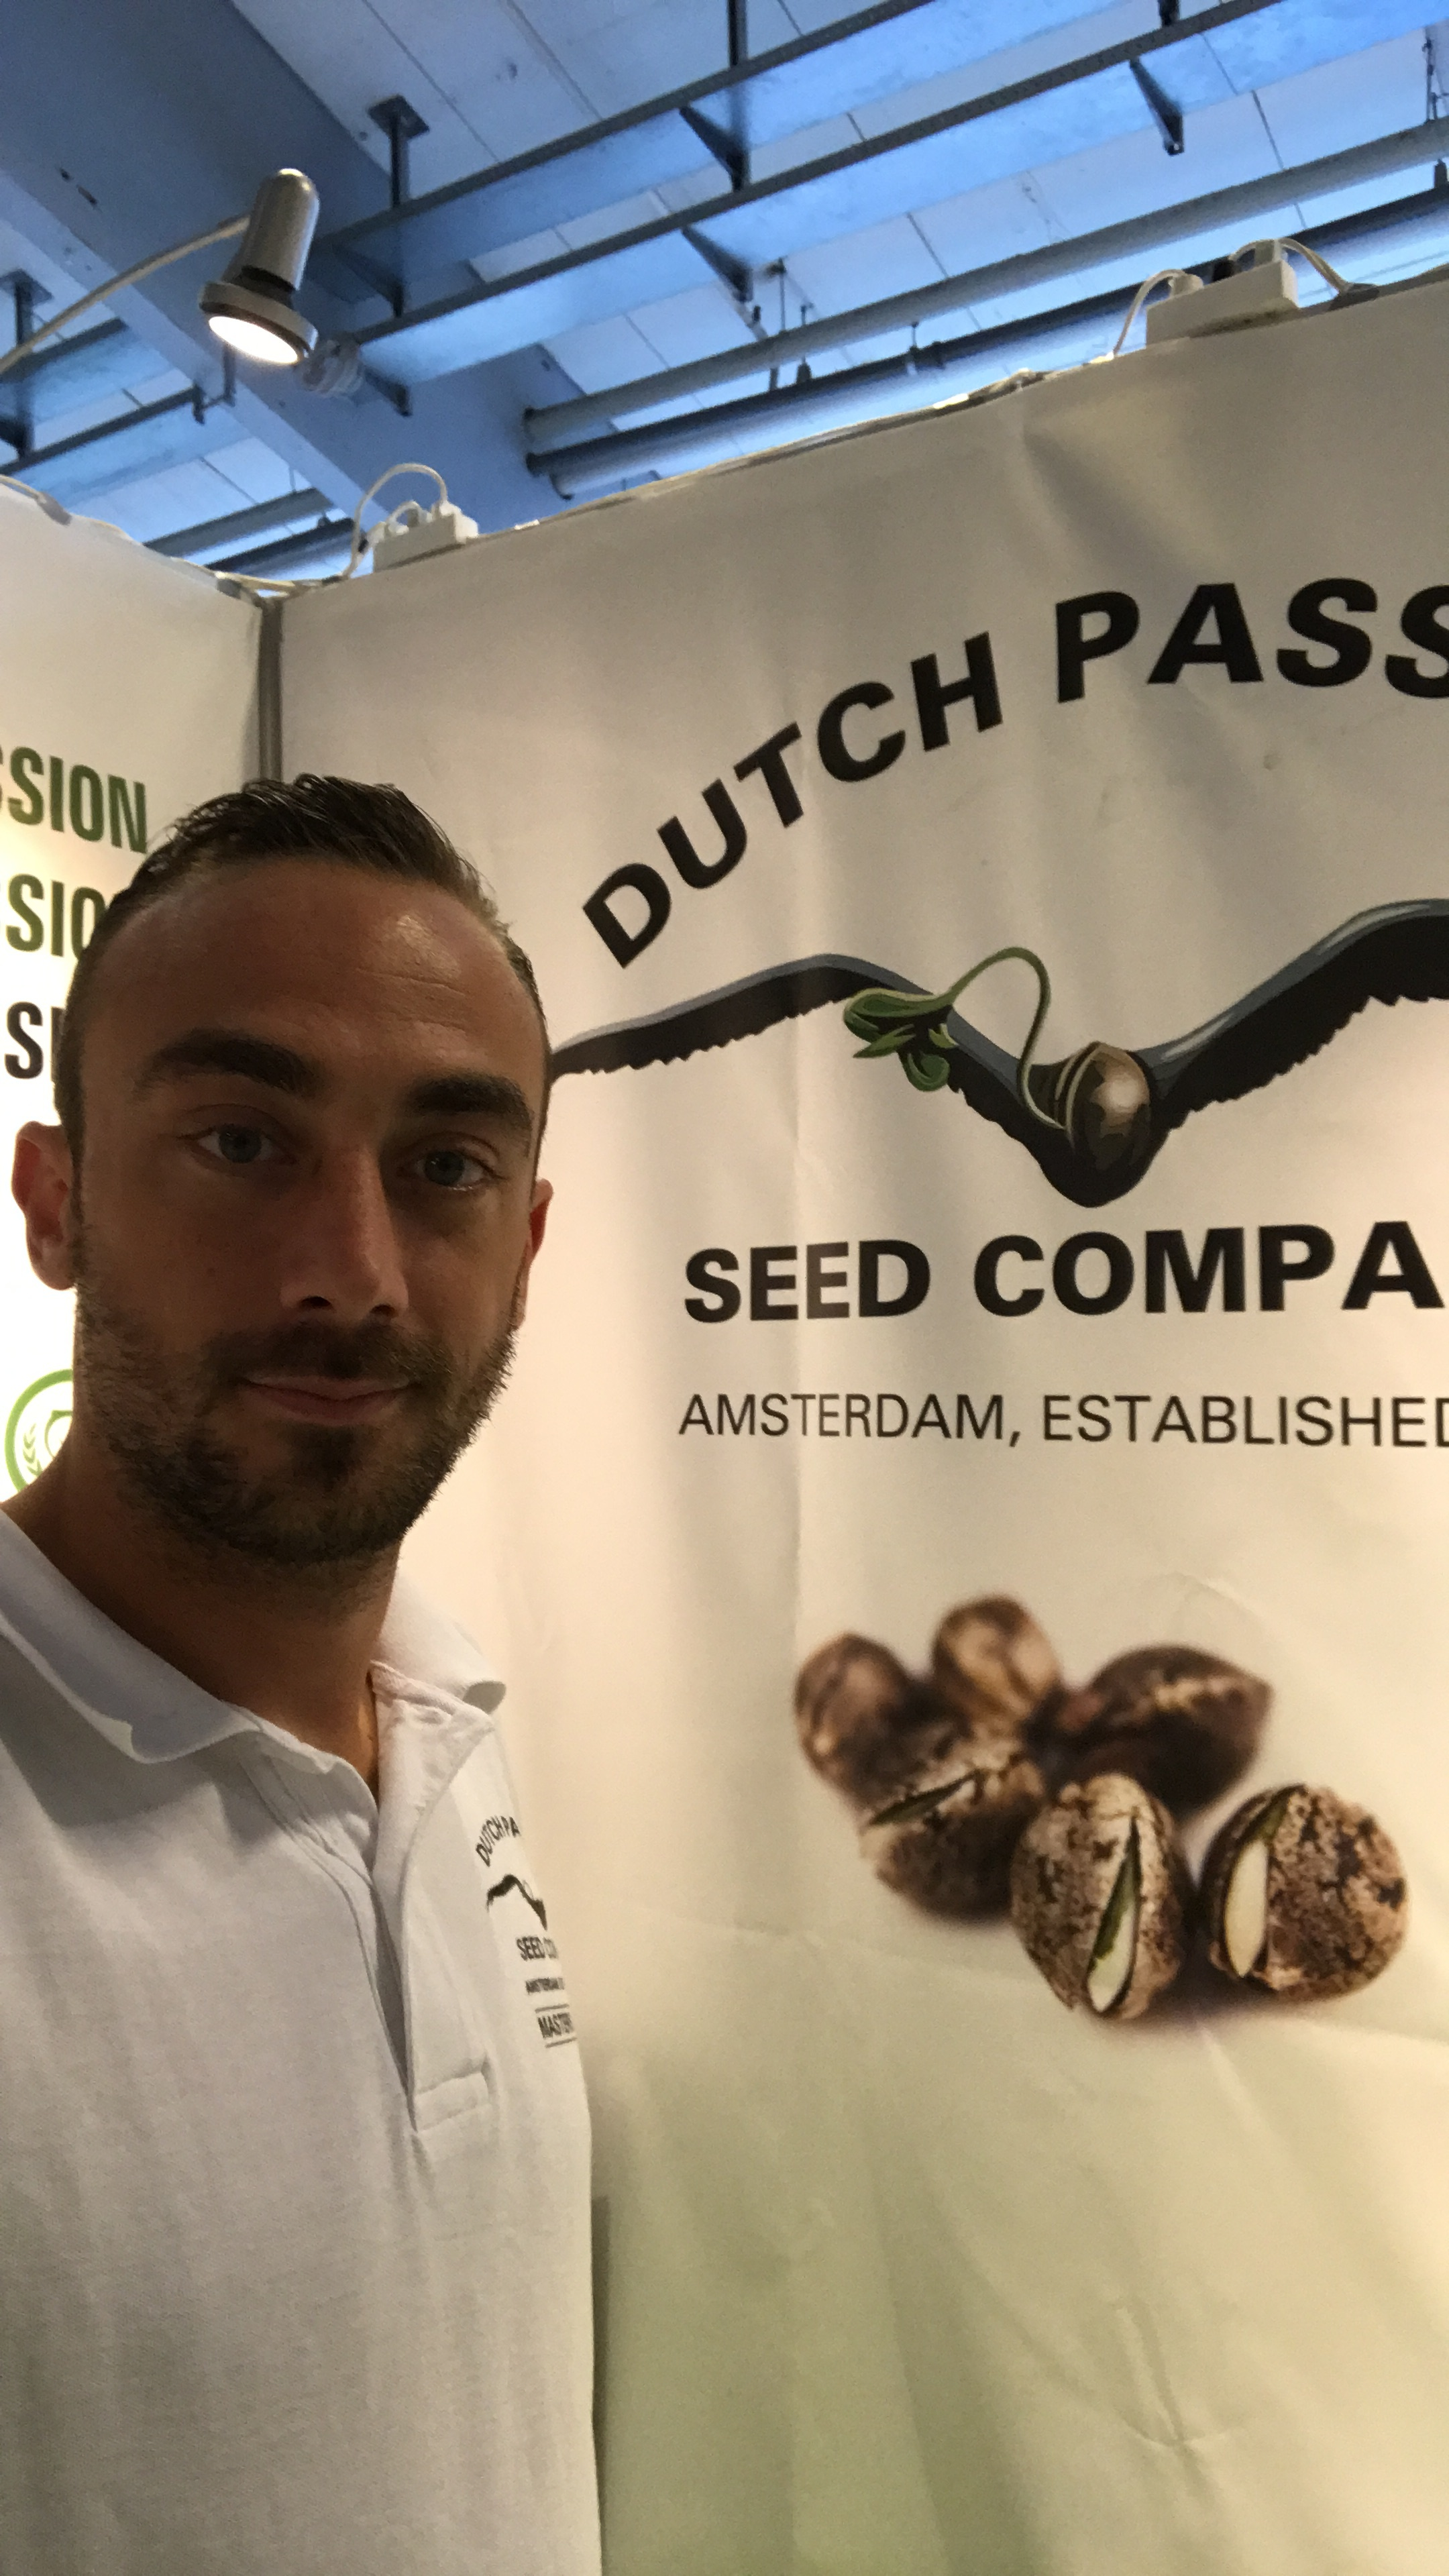 Our B2B Manager at North Grow Denmark